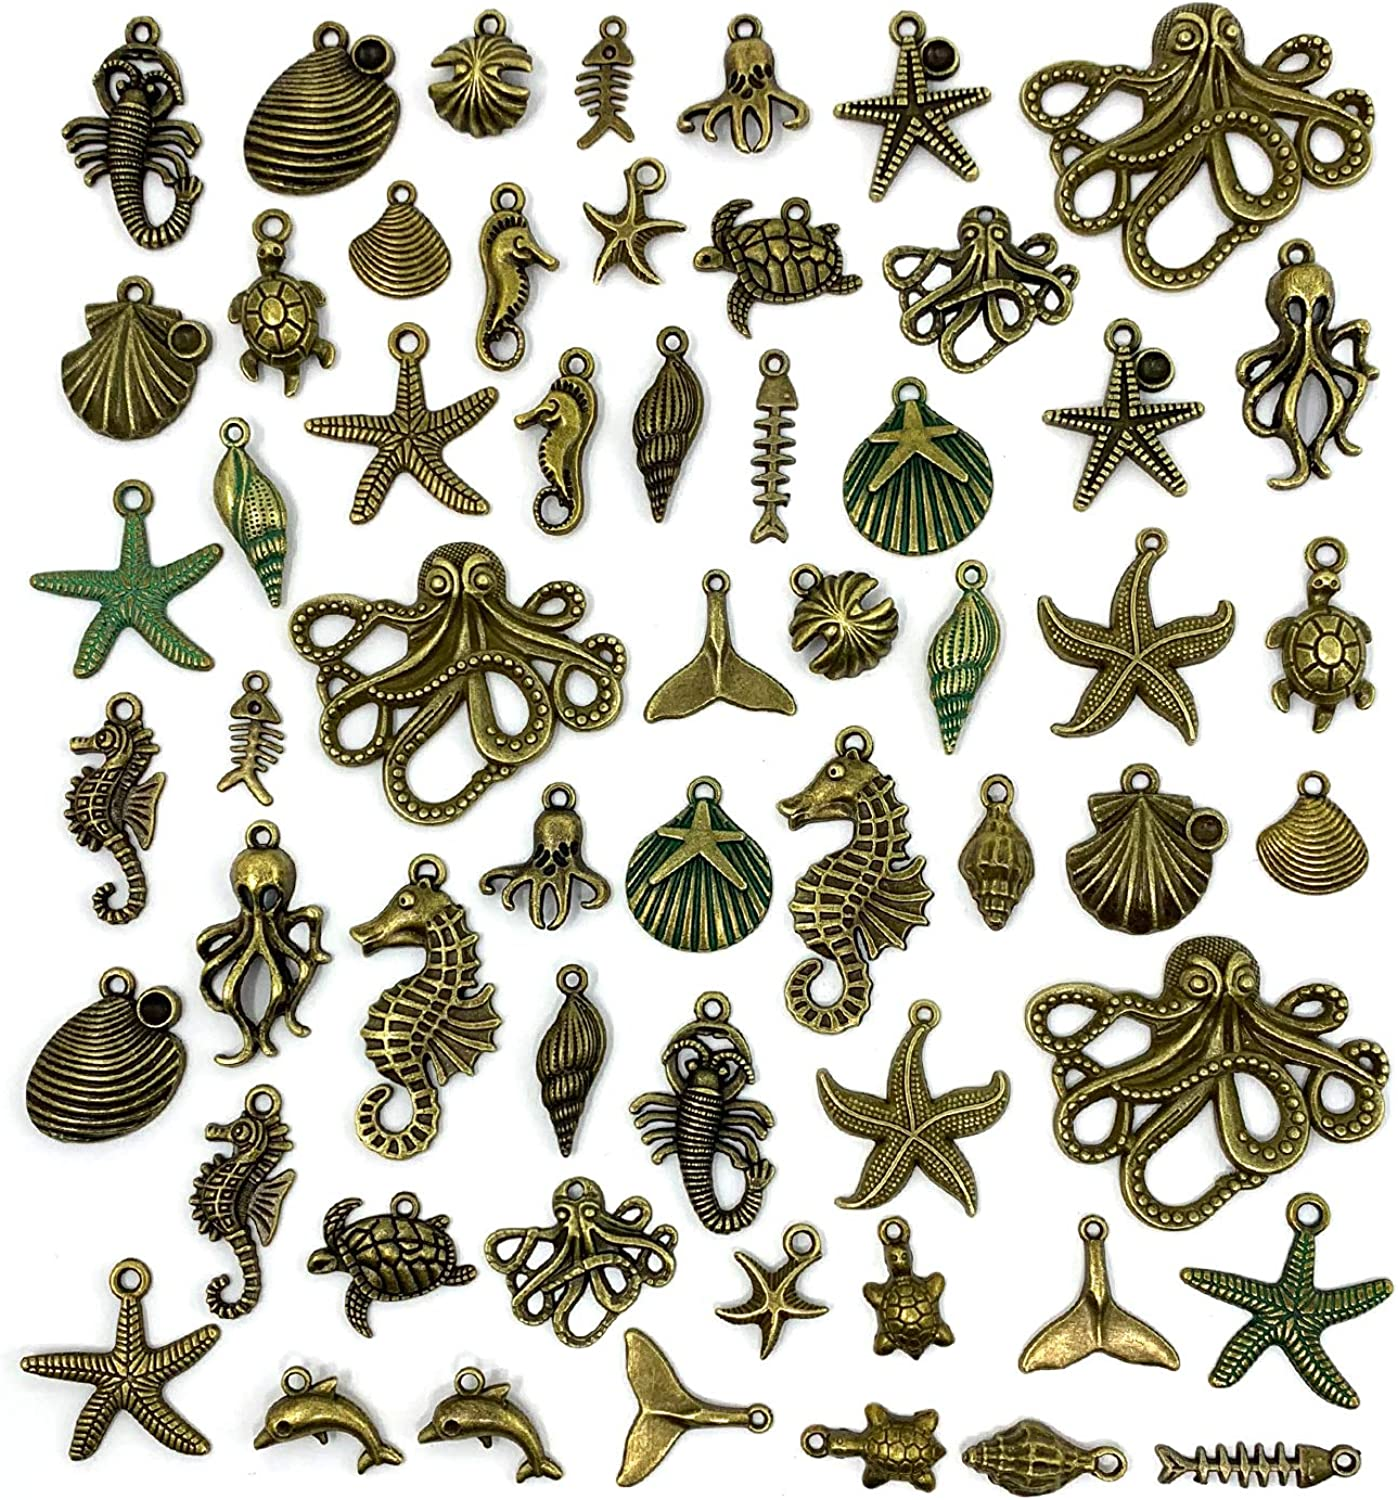 JIALEEY 100 Gram Assorted Antique Ocean Themed Charms Bronze Ocean Fish Sea Creatures Beads Pendants for Jewelry Making and Craft Making